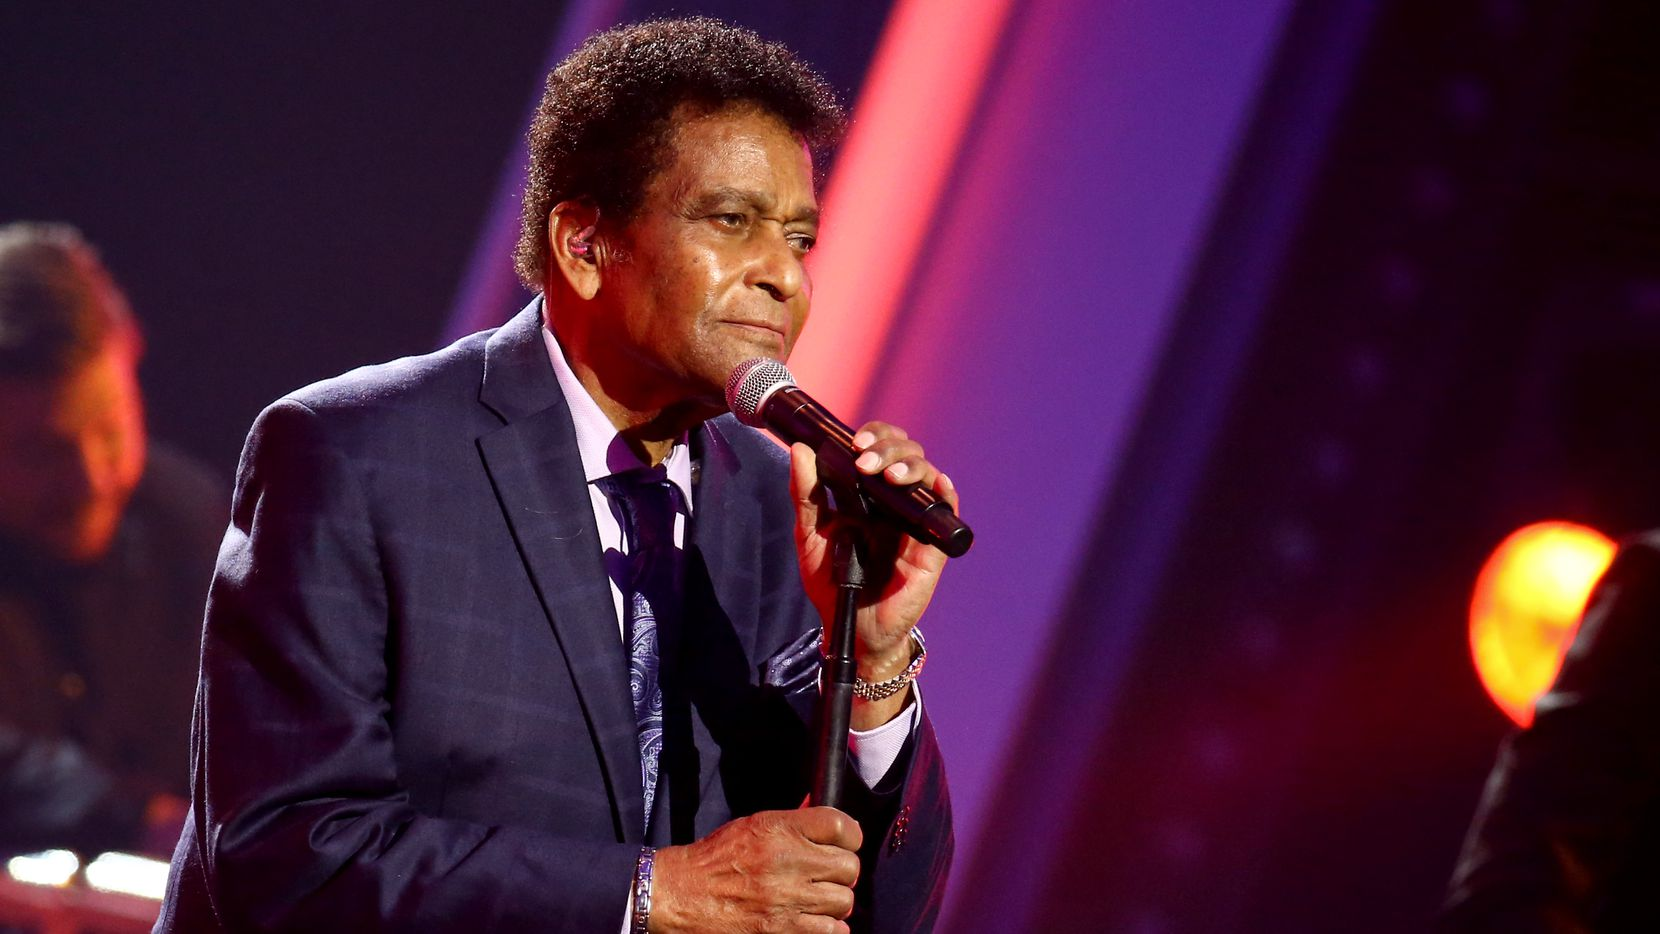 Charley Pride performs during the 54th Annual CMA Awards at Music City Center on Nov. 11 in Nashville, Tenn.